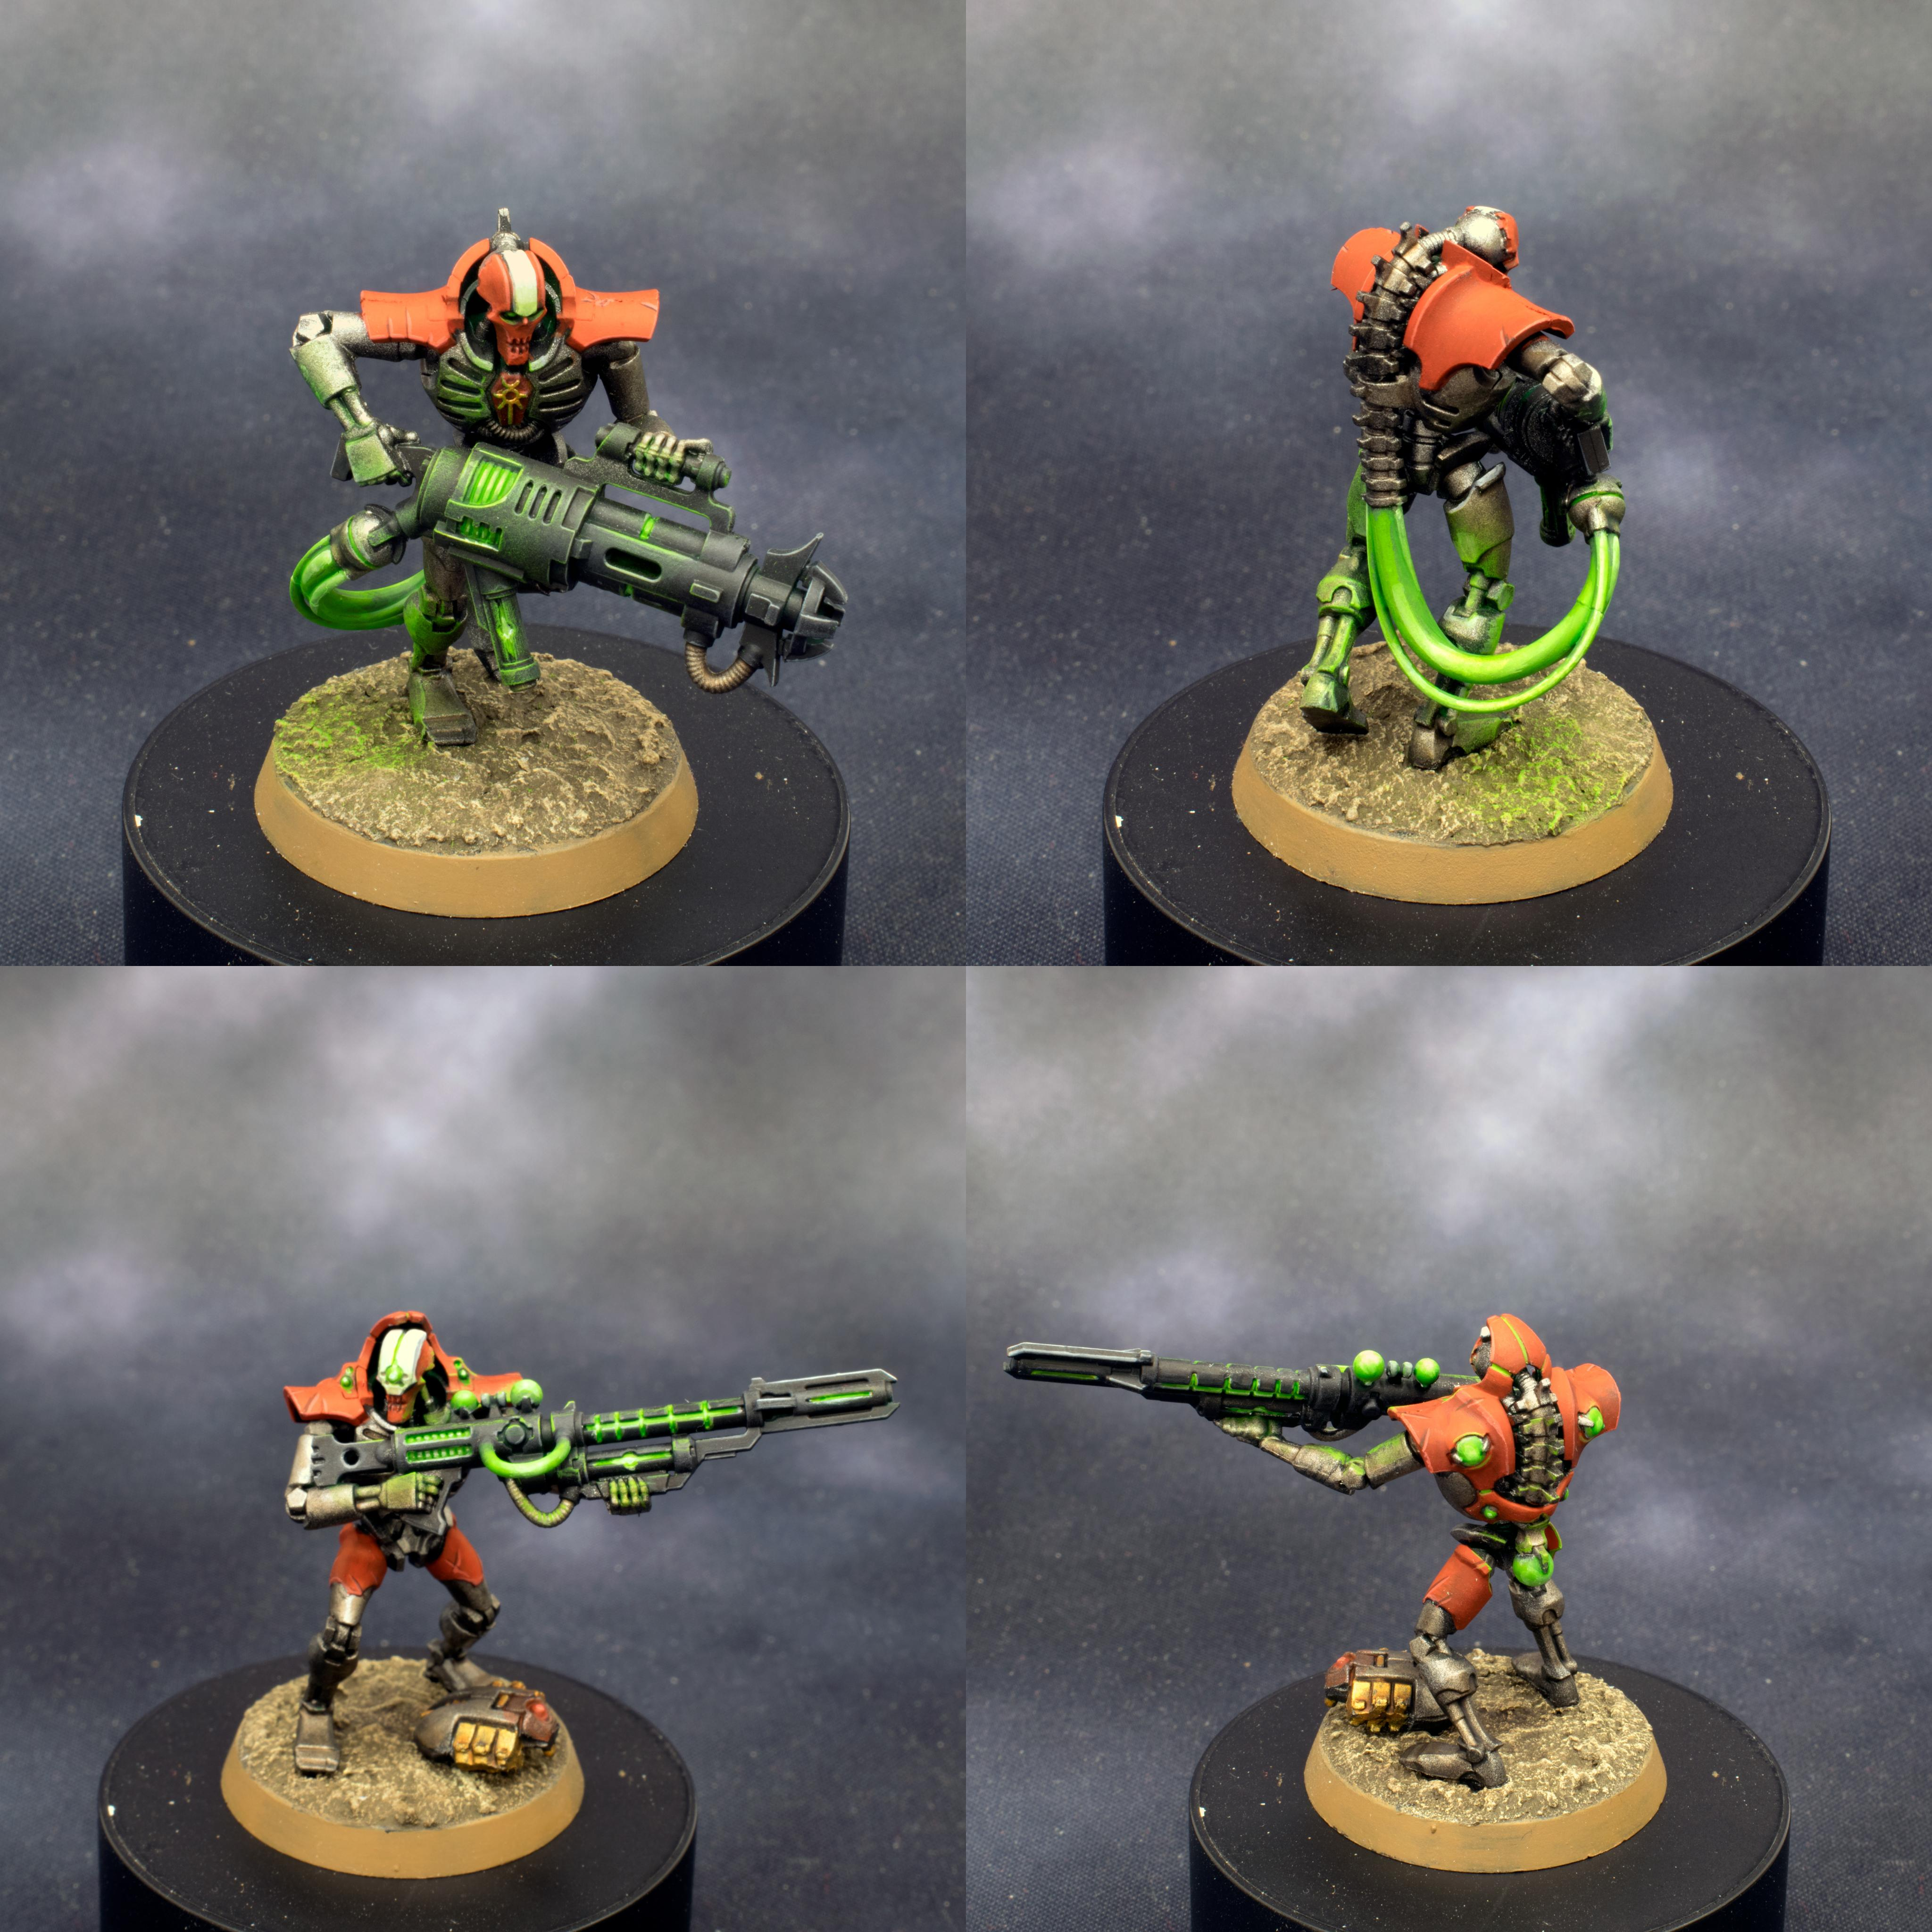 Deathmark, Eavymetal, Glow, Immortal, Killteam, Necrons, Object Source Lighting